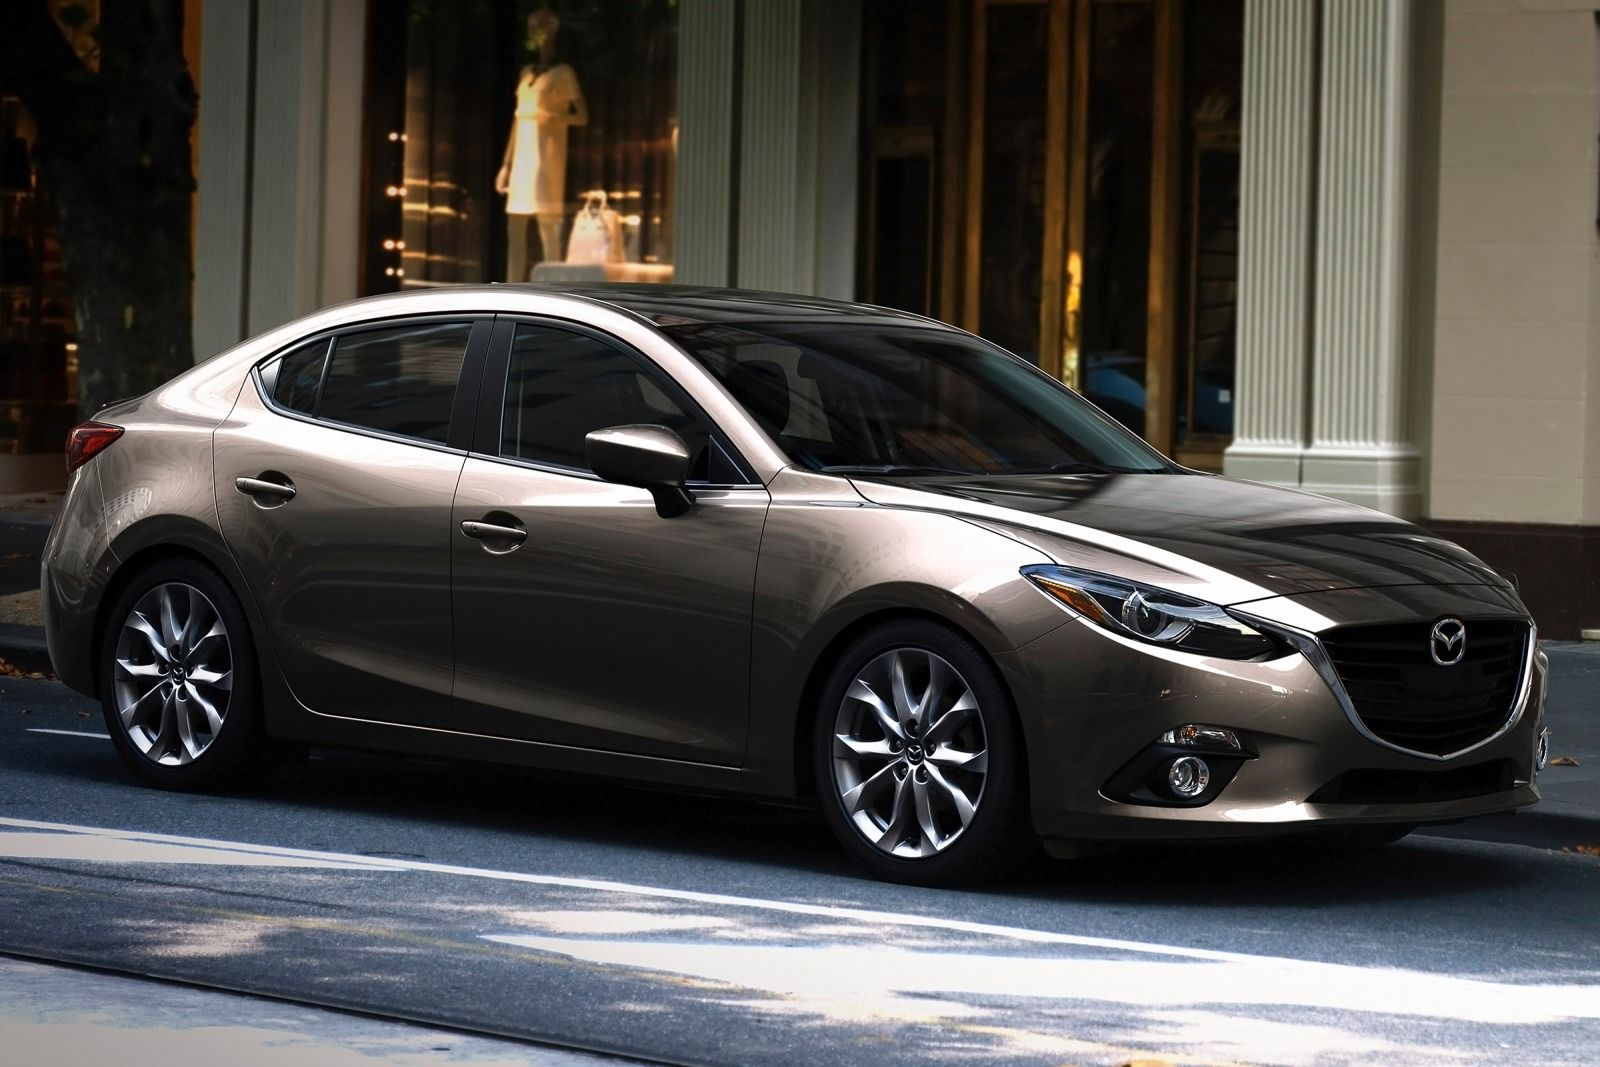 New 2015 Mazda 3 Hatchback